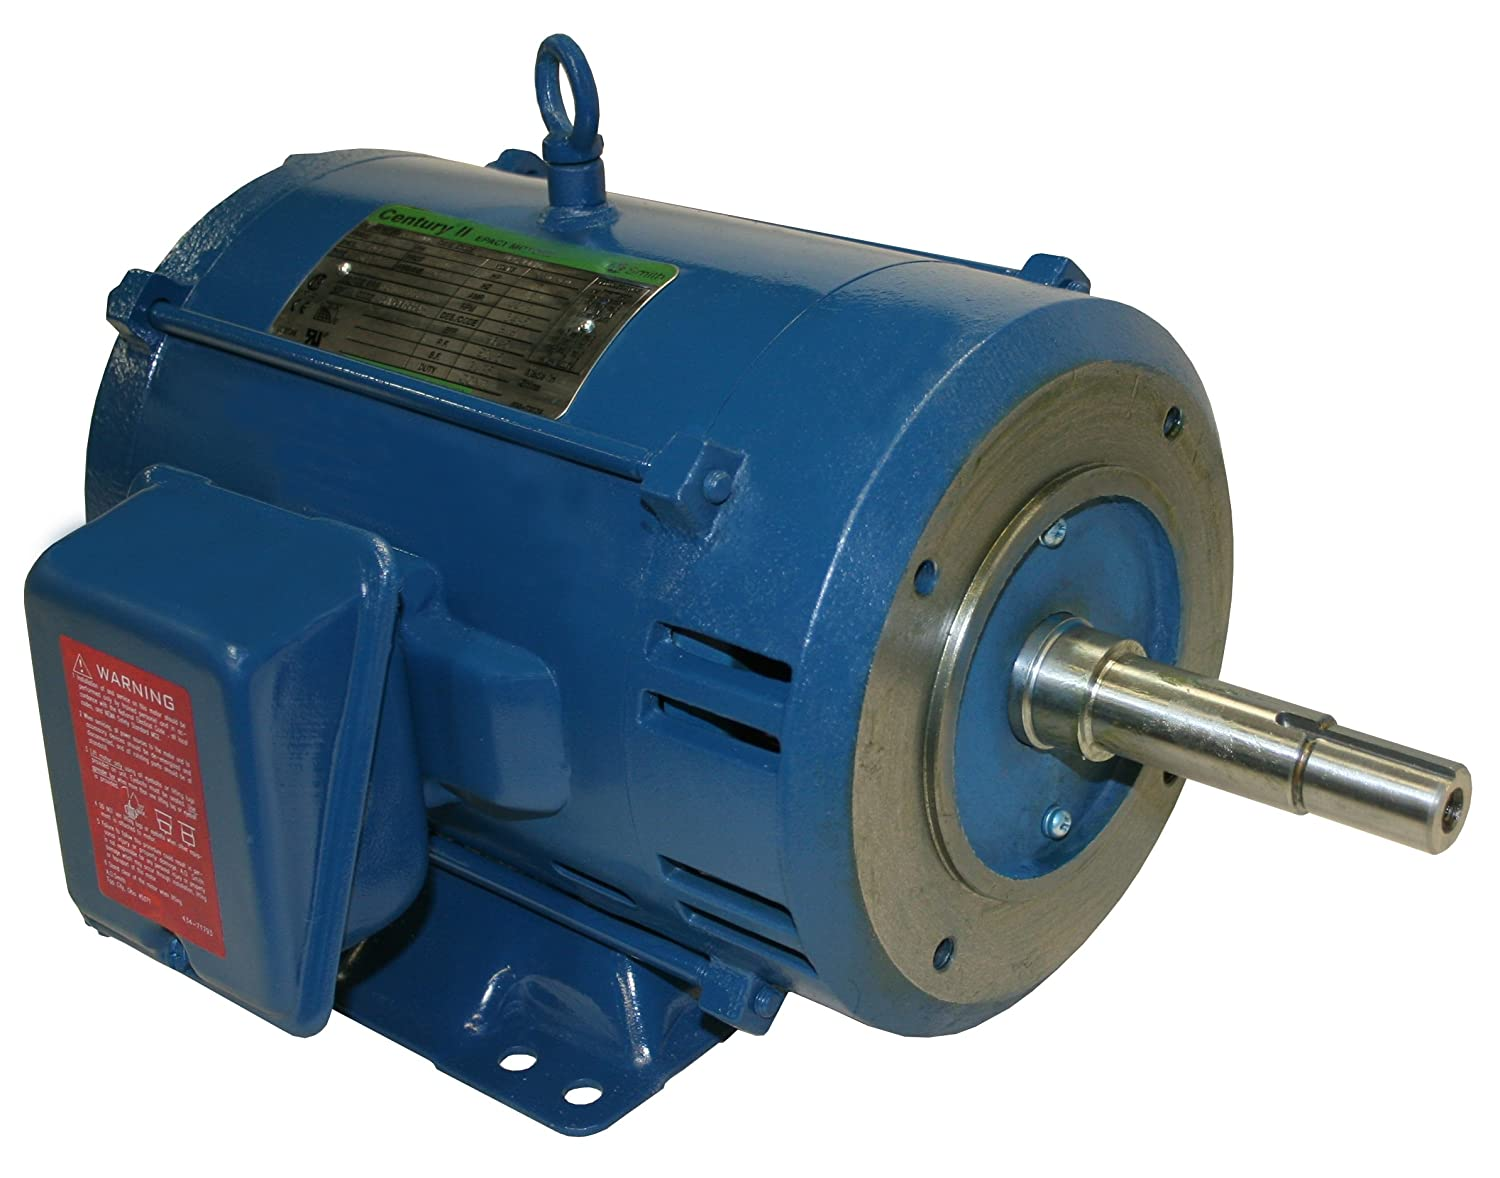 3490 RPM Three Phase 184JM Frame Smith TCP71005 5 HP Ball Bearing Closed Coupled Pump Motor TEFC Enclosure A.O 200-230//460 Volts